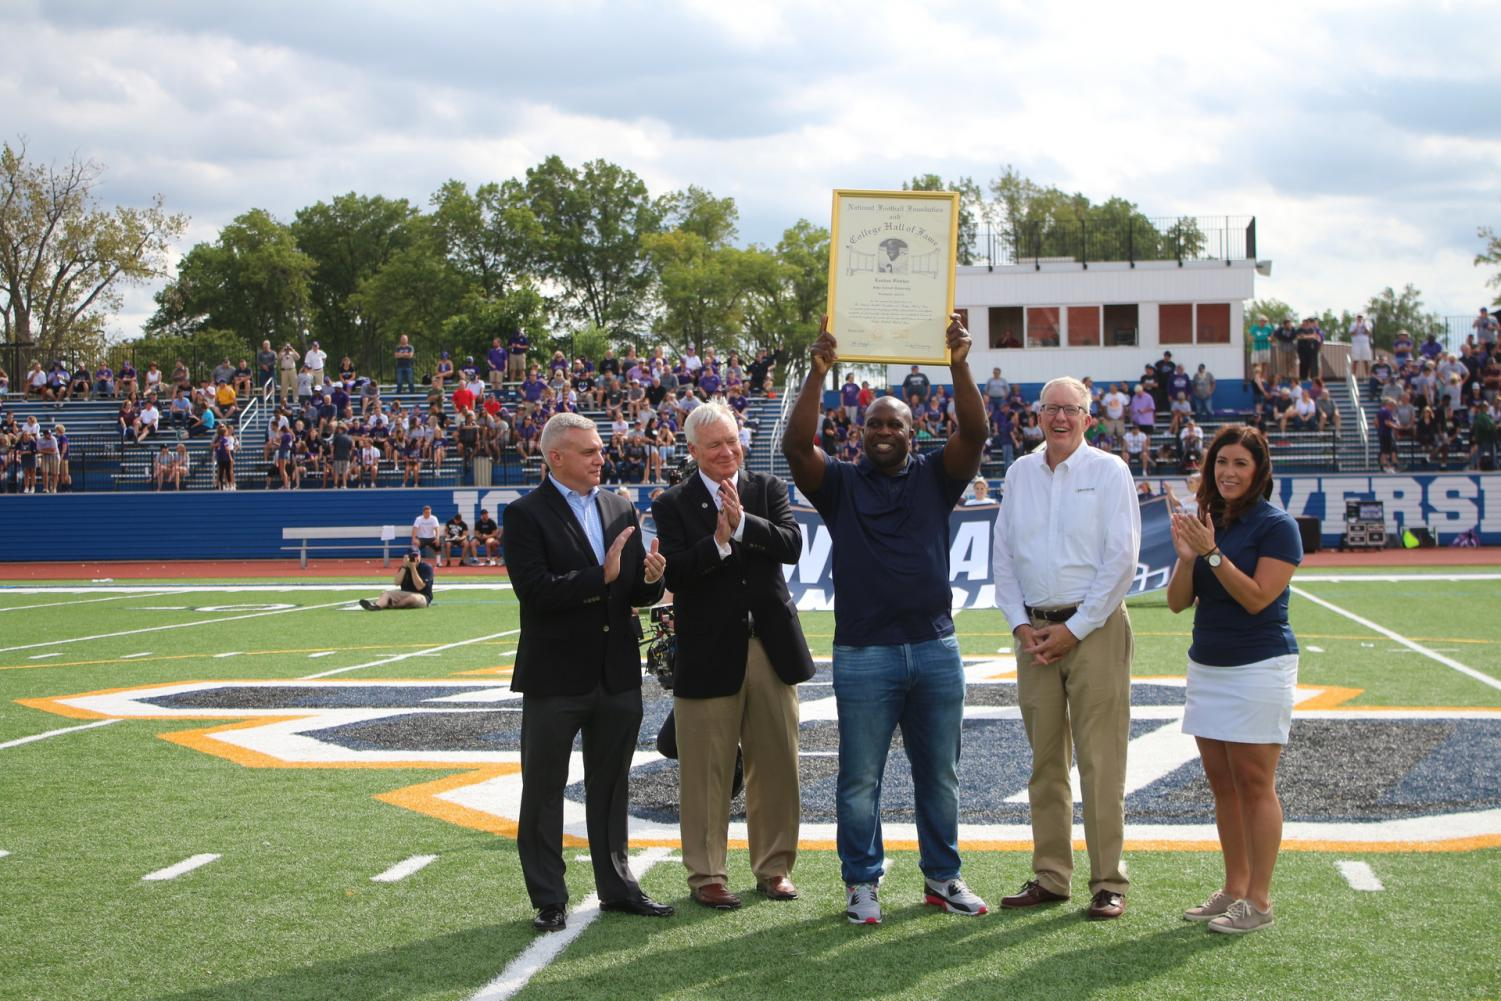 Pictured above is London Fletcher, showing his NFL Hall of Fame Plaque to the JCU crowd at halftime of the football game against Mount Union.(Photo by JCU Sports Information).